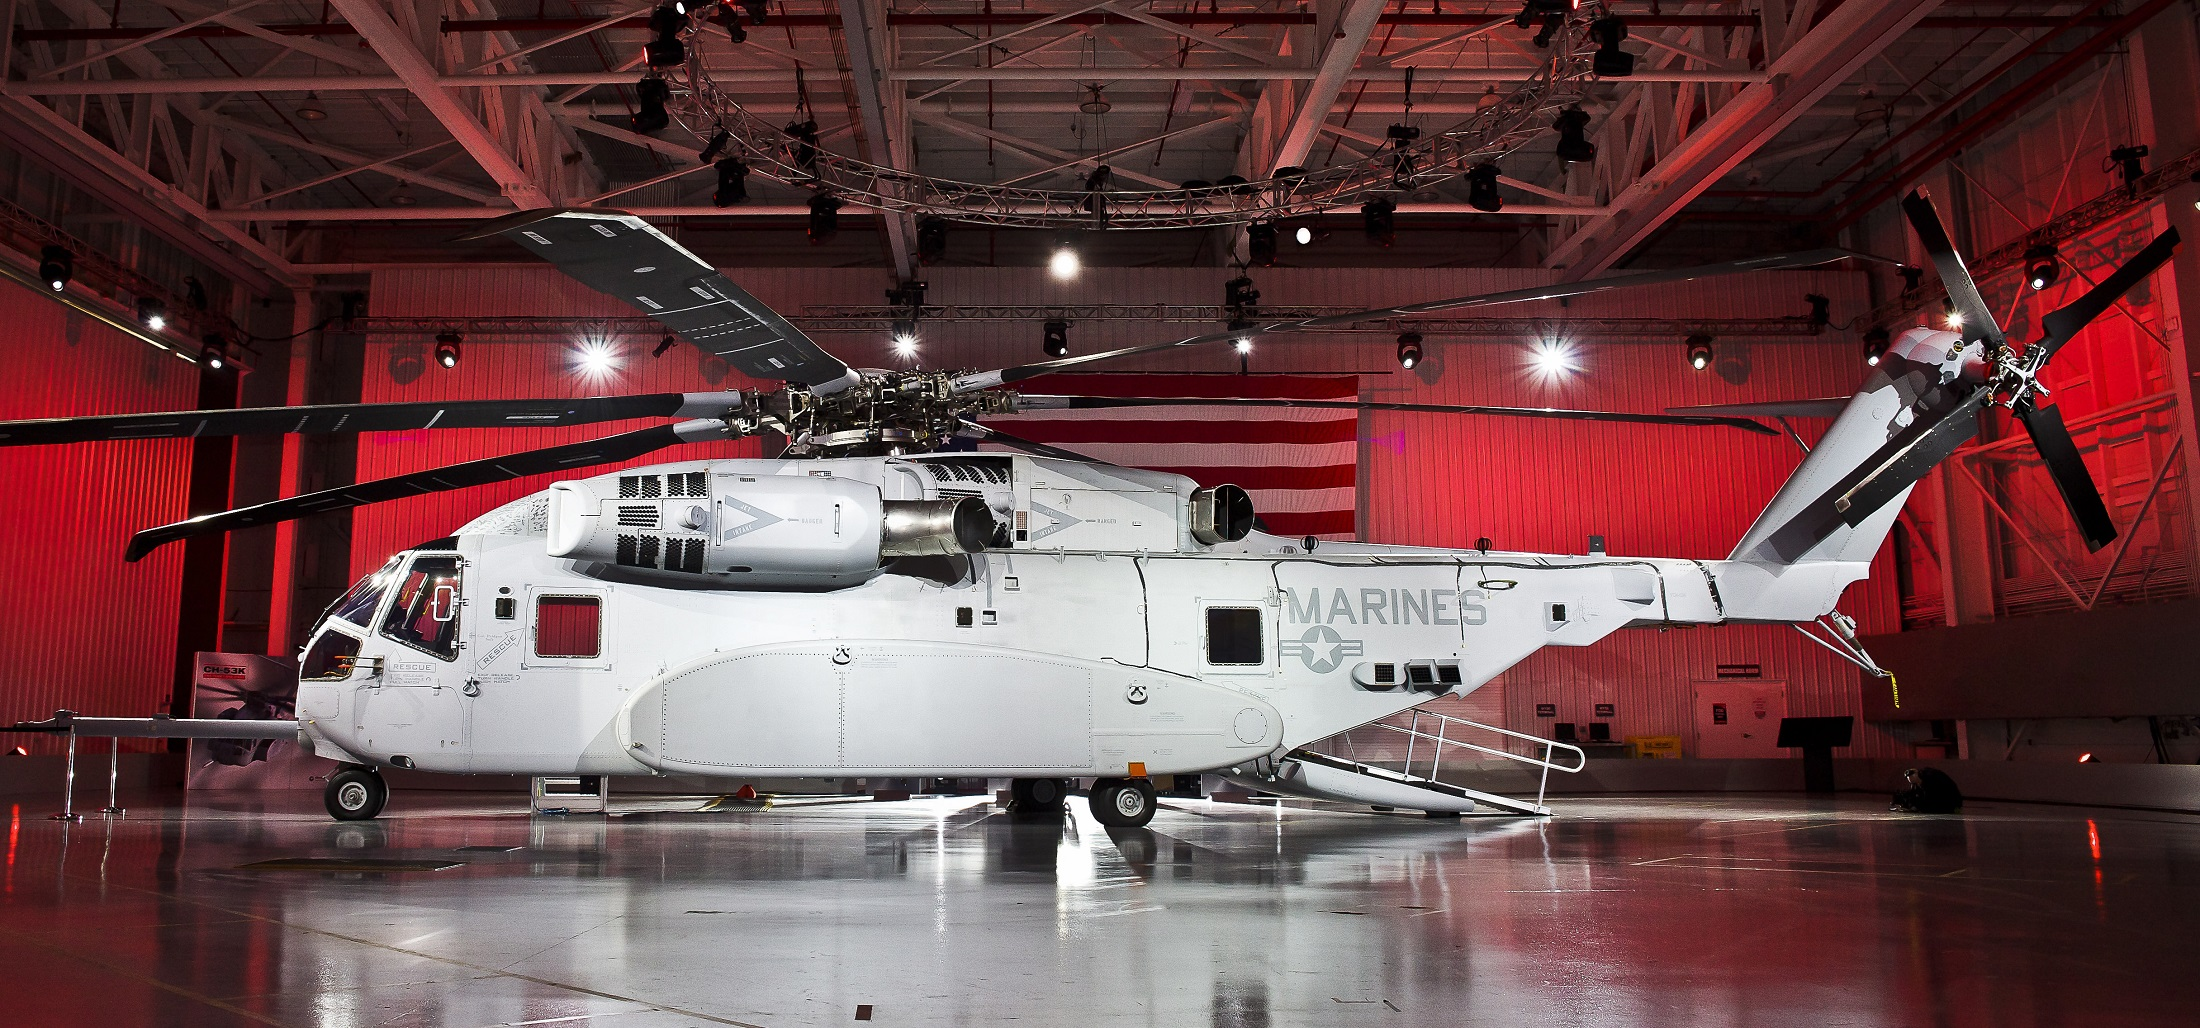 The Marine Corps' Most Expensive Helicopter Ever (More Than an F-35) Is In Trouble